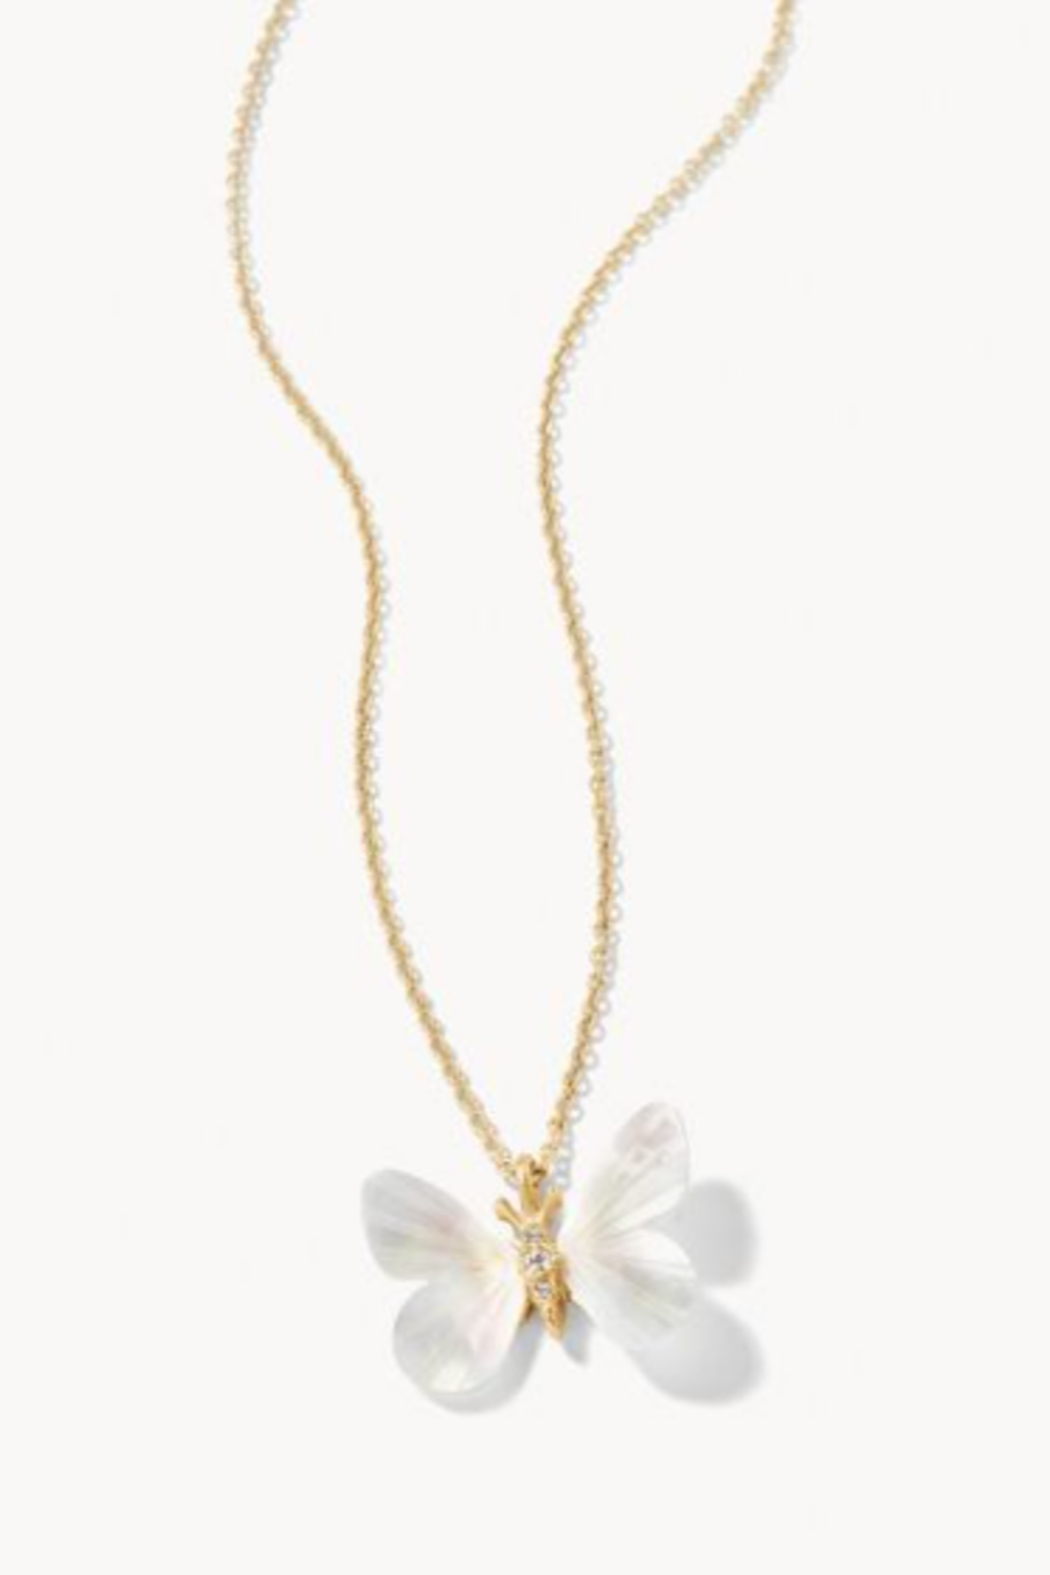 Spartina 449 Monarch Carved Necklace 17